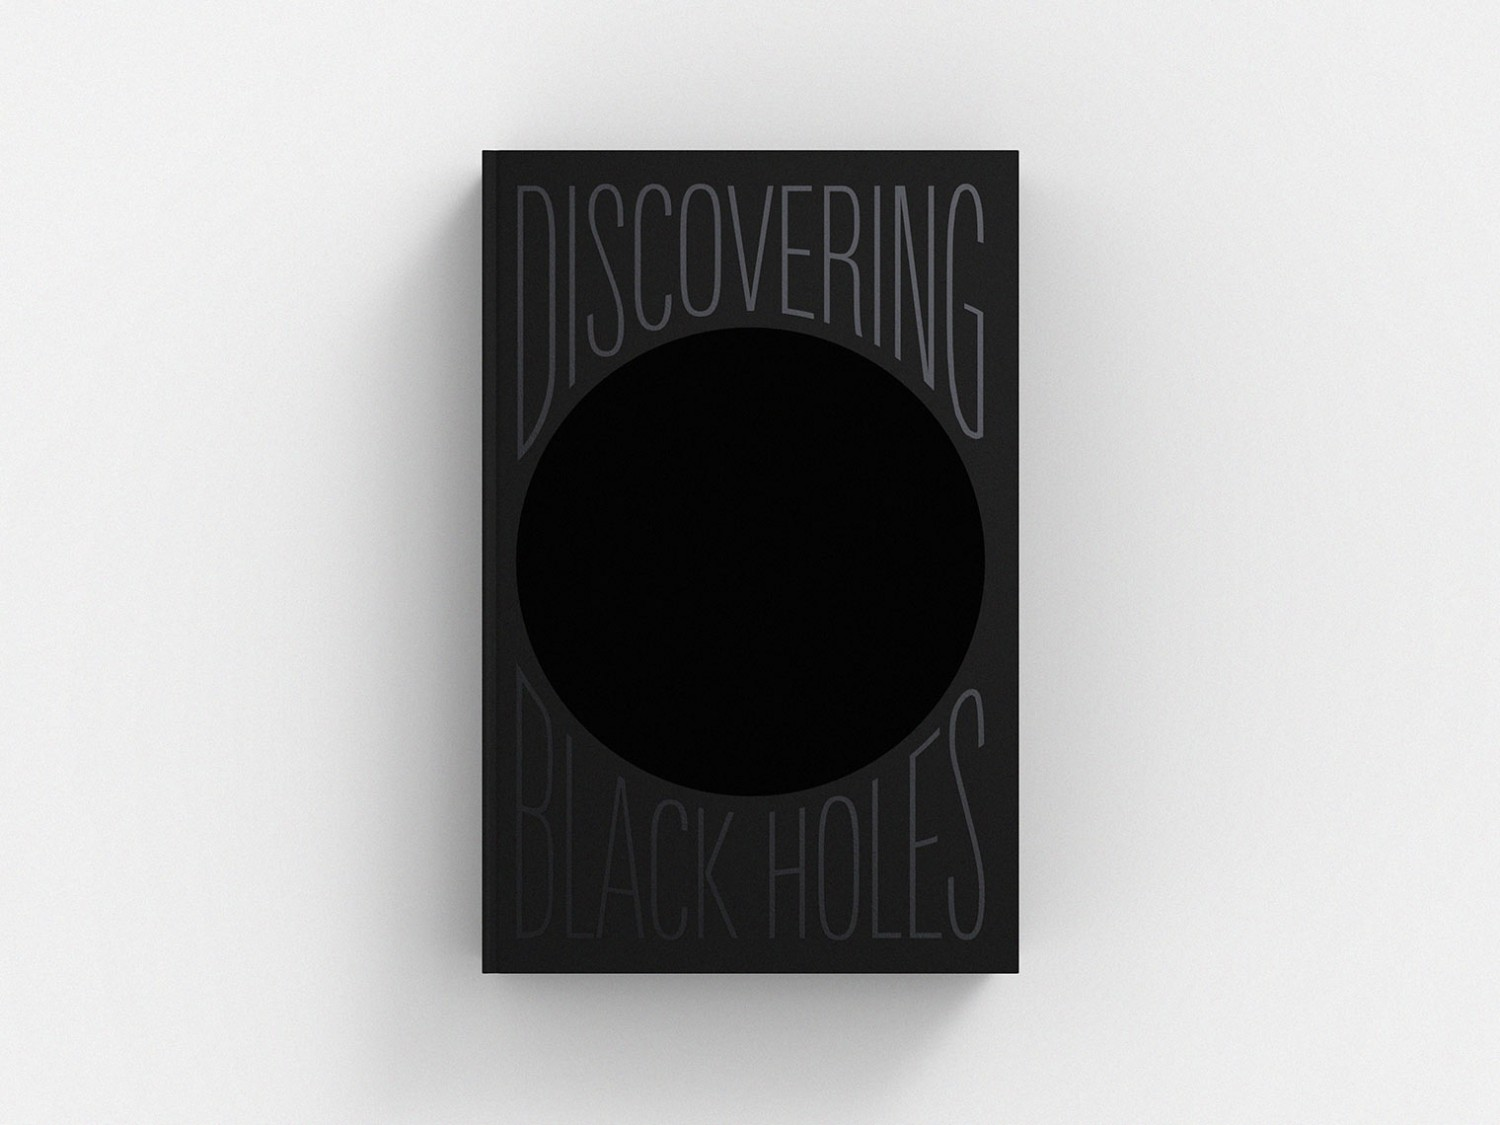 Discovering Black Holes